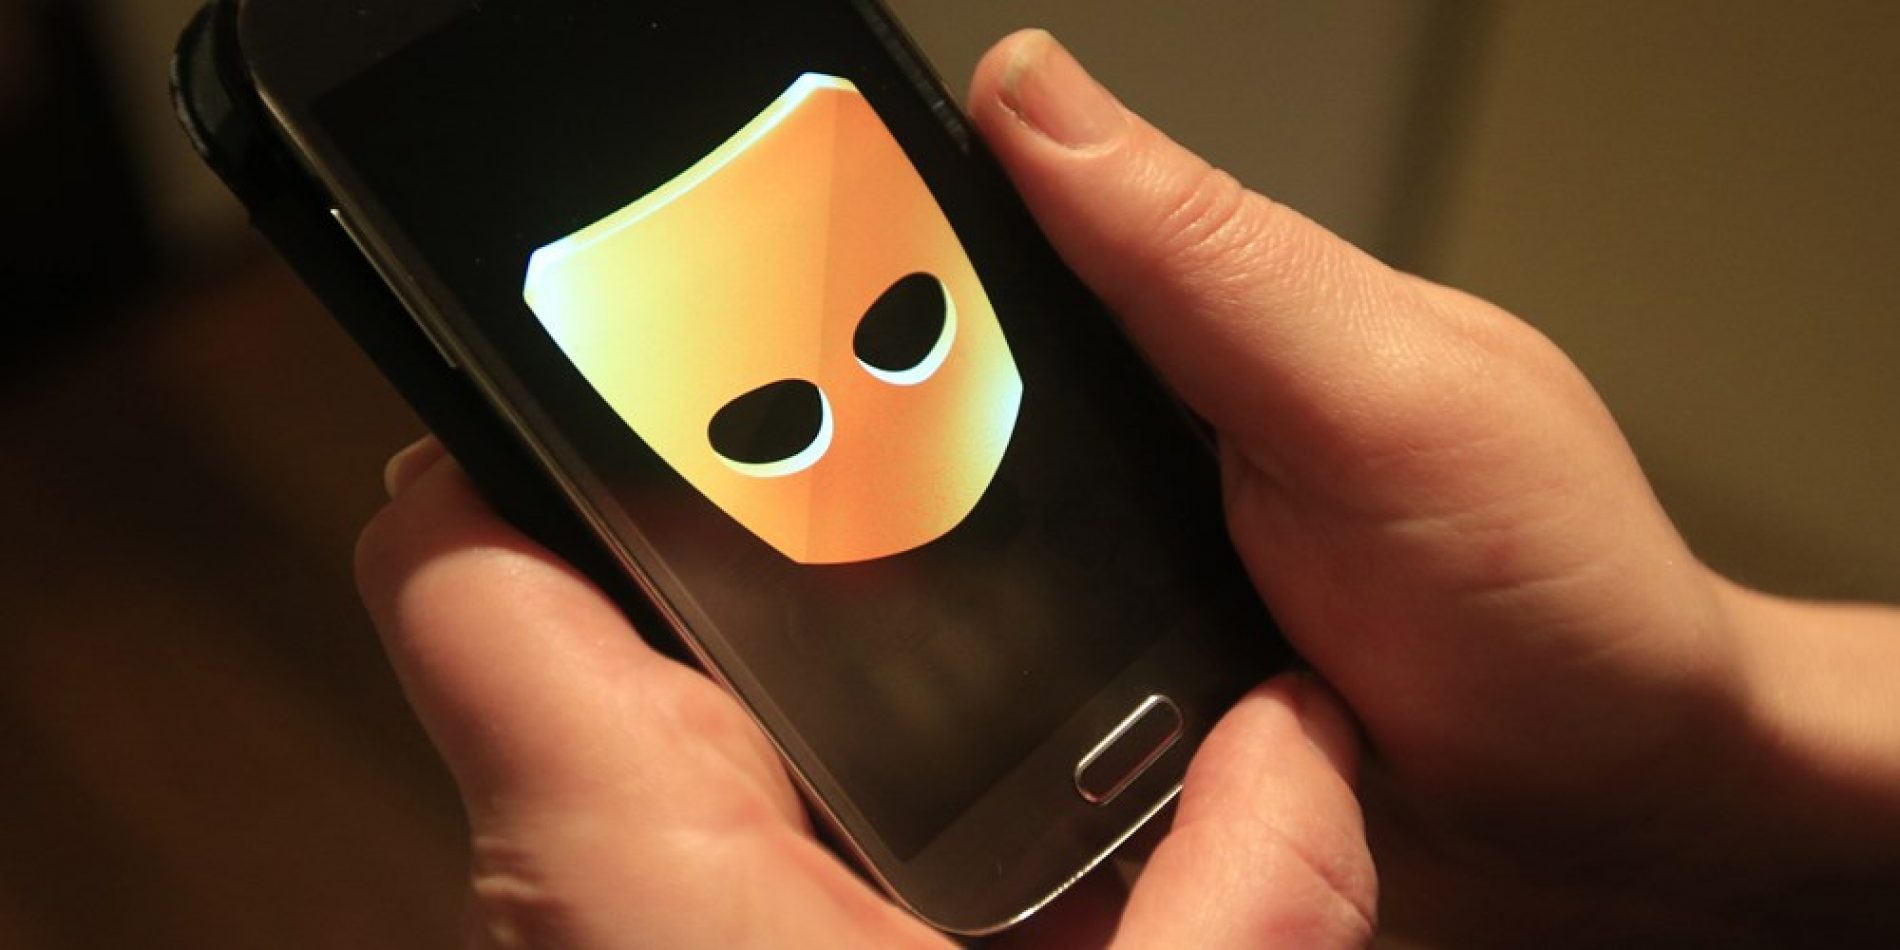 Grindr has a major security flaw that can pinpoint a user's exact location